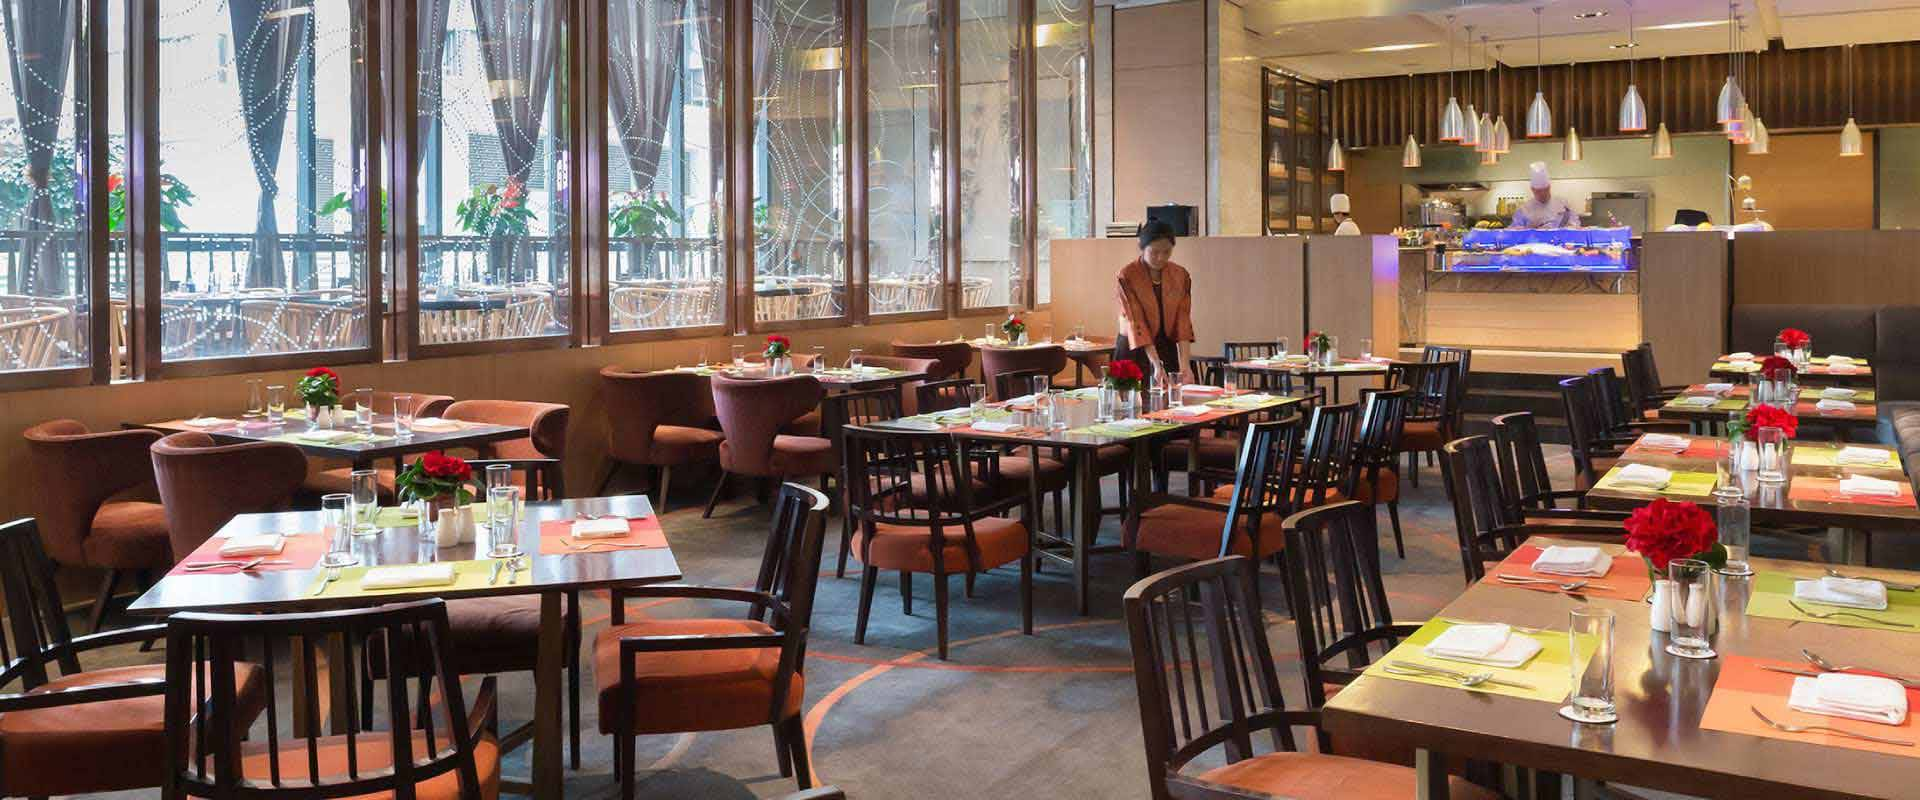 Caf marco restaurants bars marco polo parkside beijing for Cloud kitchen beijing